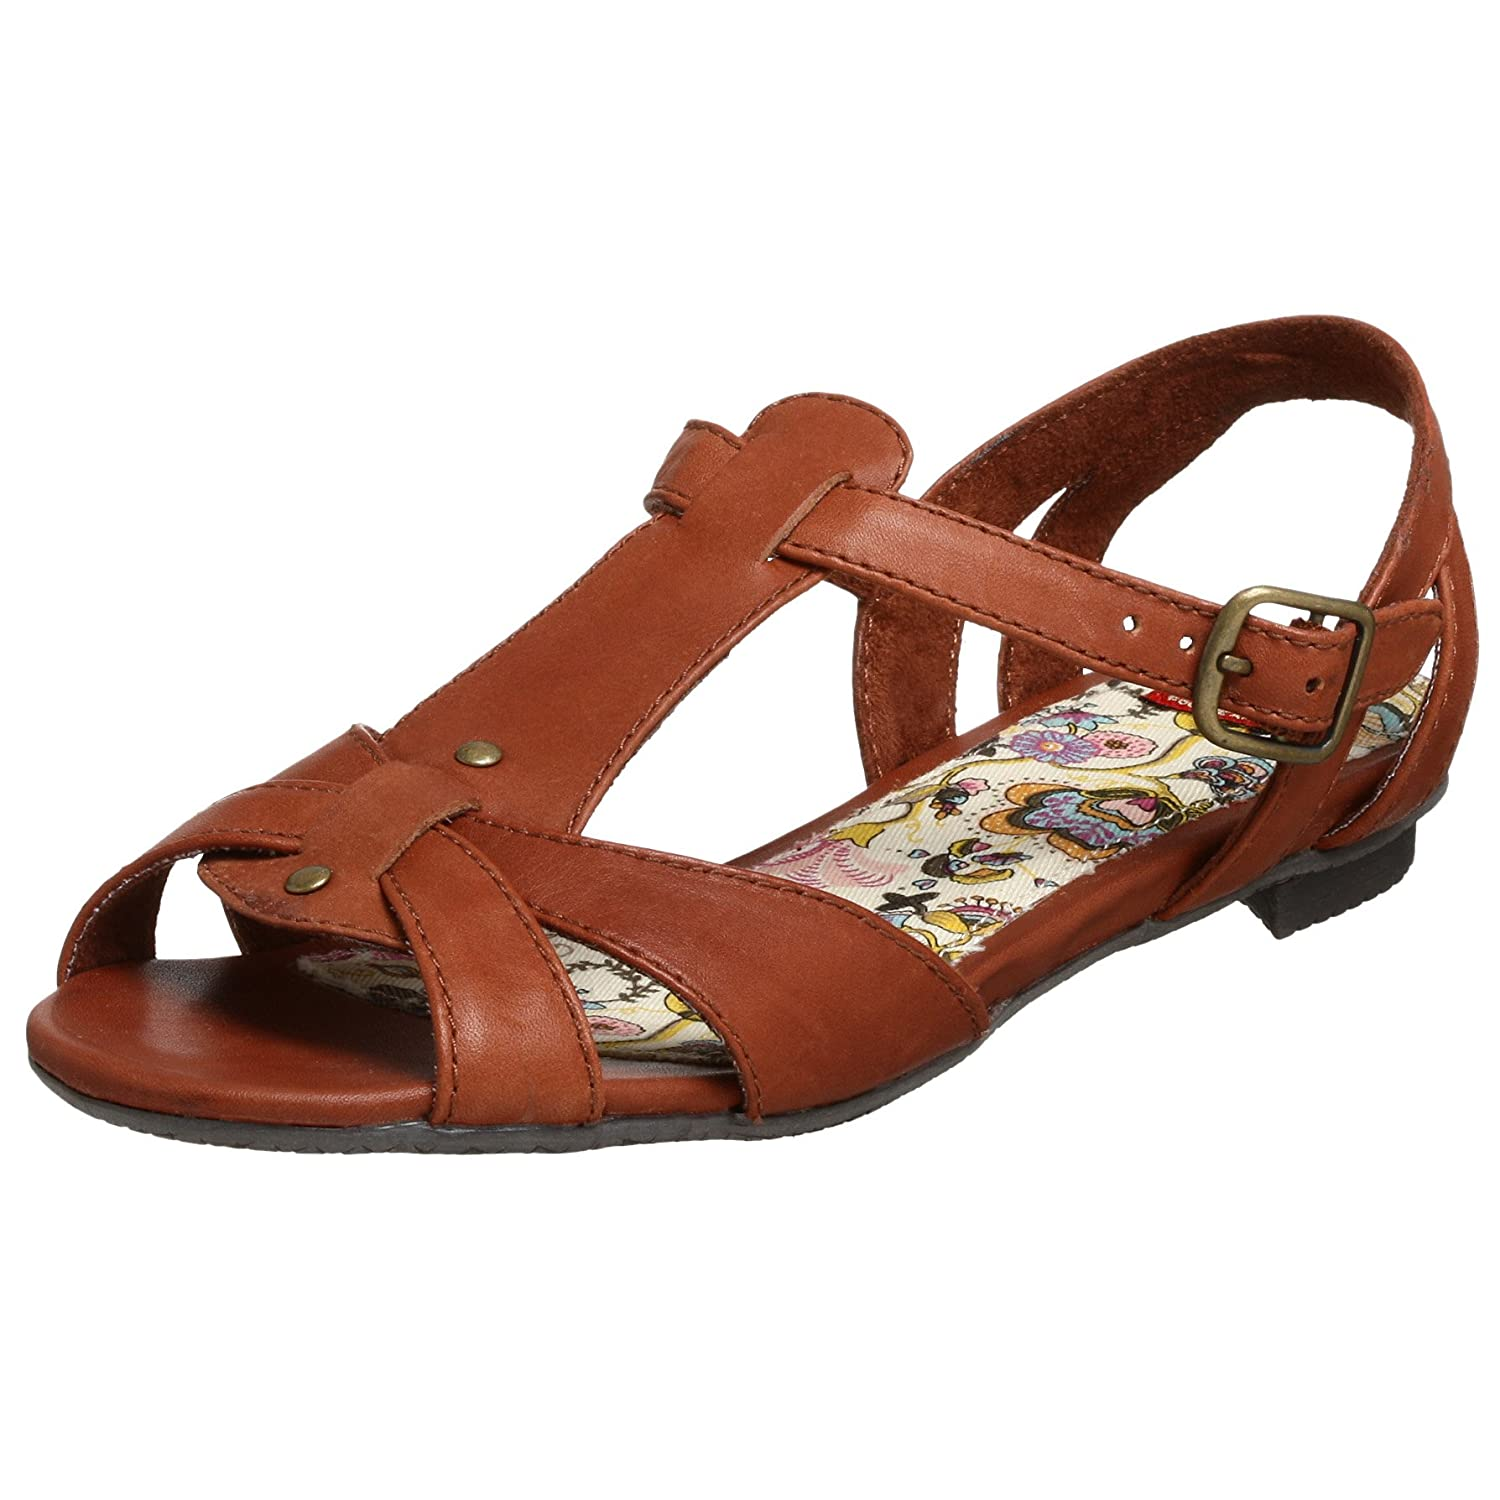 BC Footwear Women's Tsunami Sandal - Free Overnight Shipping & Return Shipping: Endless.com :  t-strap bc footwear buckle retro